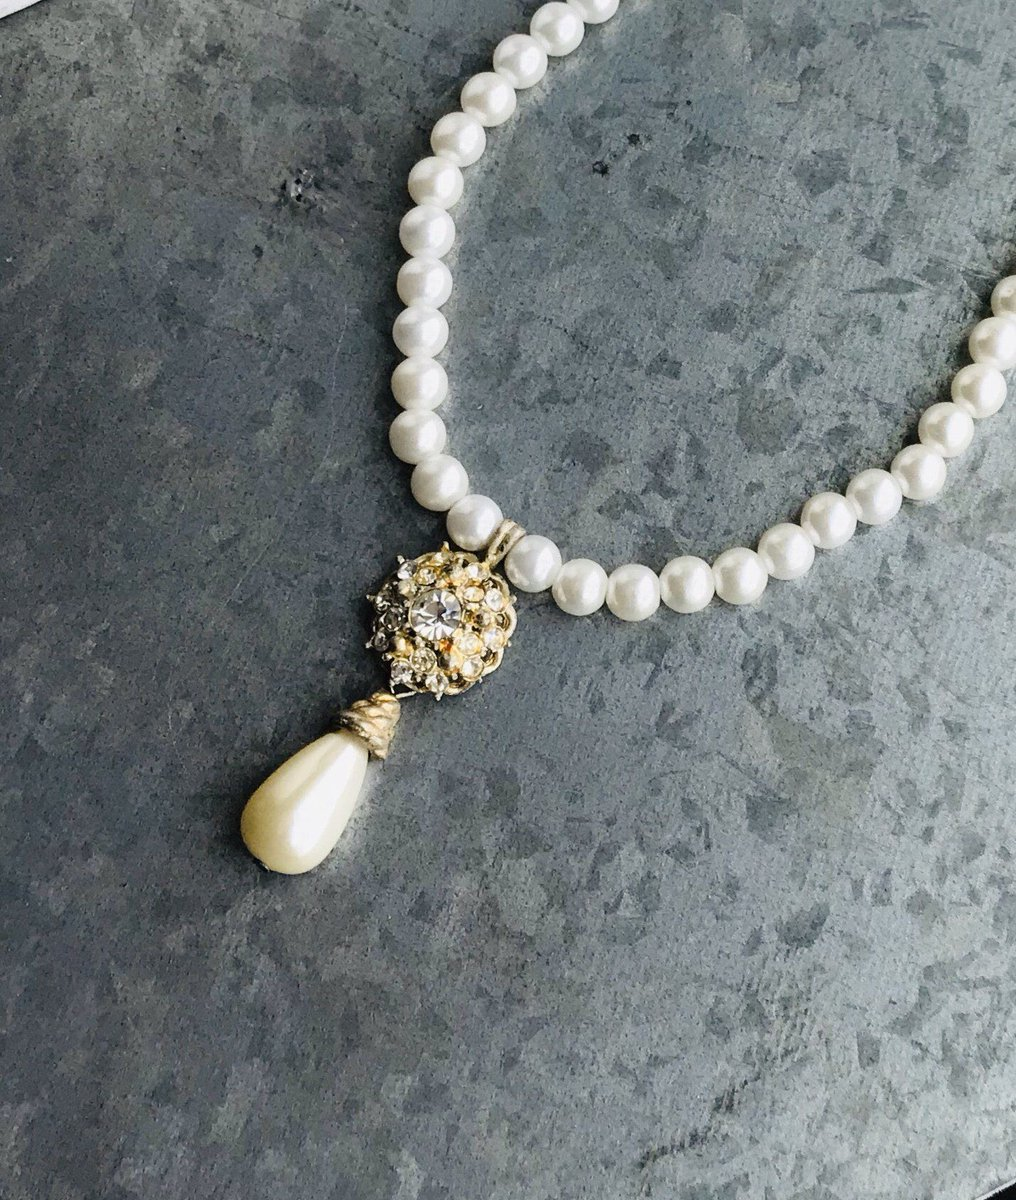 Excited to share this item from my #etsy shop: Vintage pearl necklace, gift for her, bridal necklace, costume jewelry #wedding #pearl #gold #vintagejewelry #pearl #necklace #bridaljewelry #etsyjewelry #giftforher https://etsy.me/2A0pIQC pic.twitter.com/yLdk6Ndobd